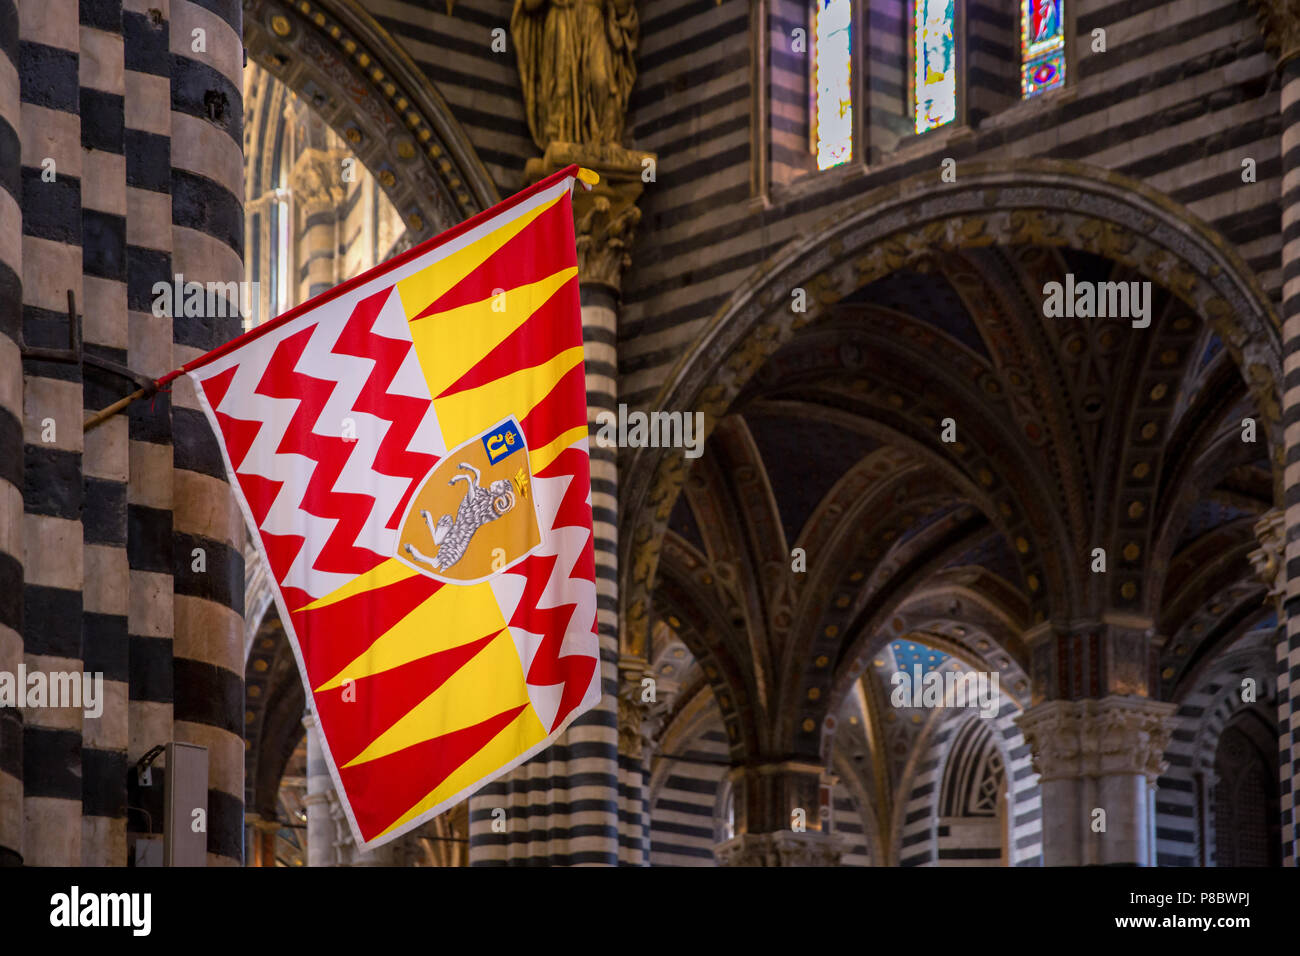 Dome of the Cathedral of Siena with a banner of Valdimontone, Cattedrale di Santa Maria Assunta, interior view, Siena, Tuscany, Italy Stock Photo